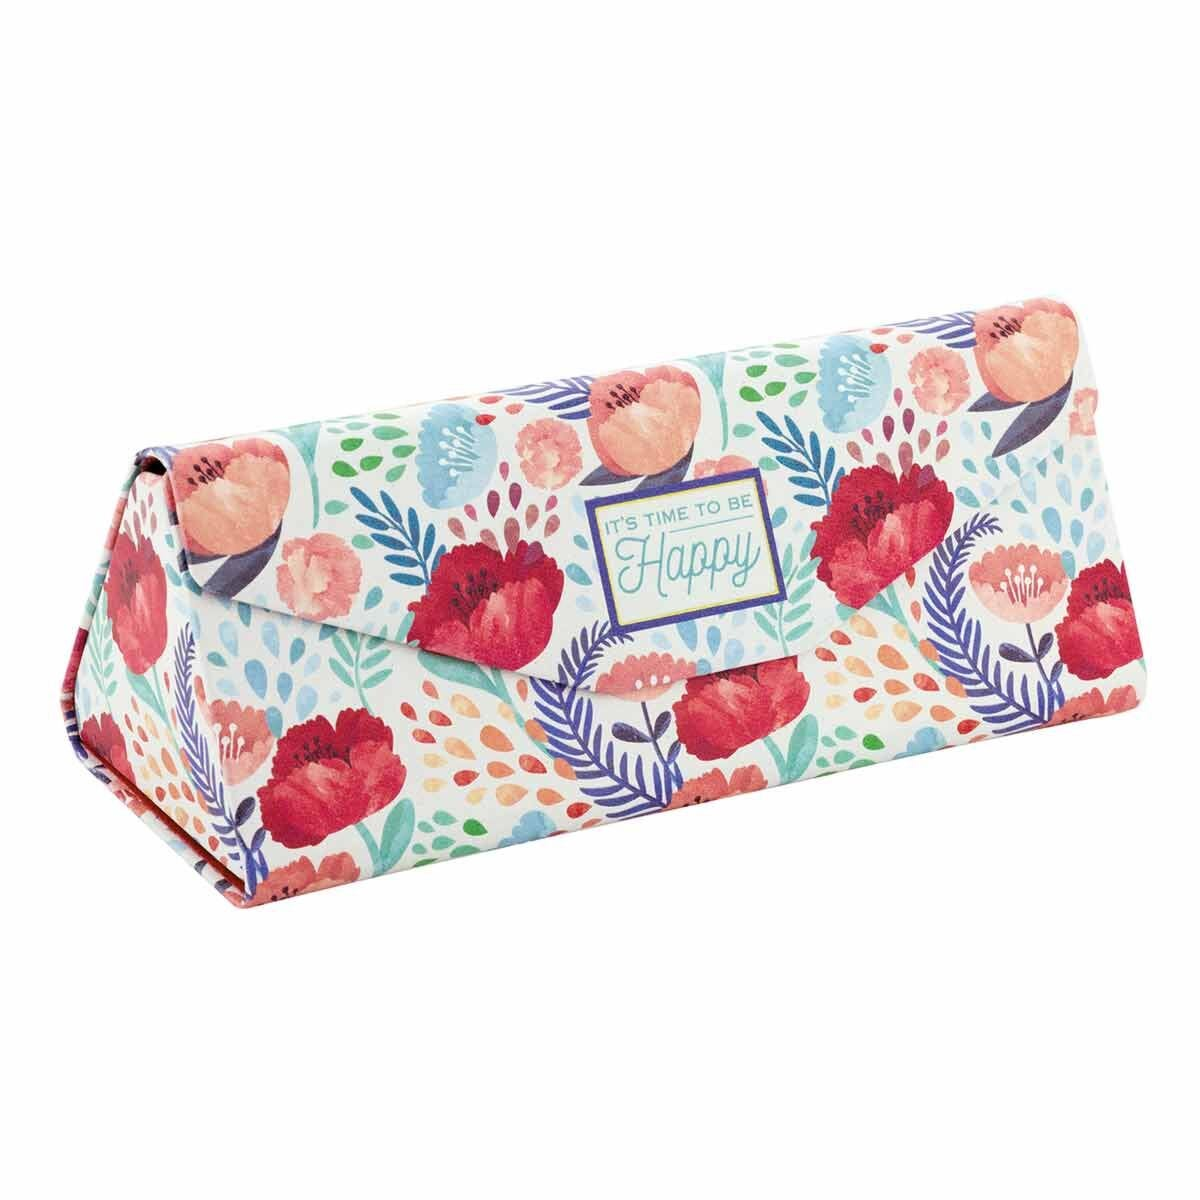 Legami See You Soon Foldable Glasses Case Flower